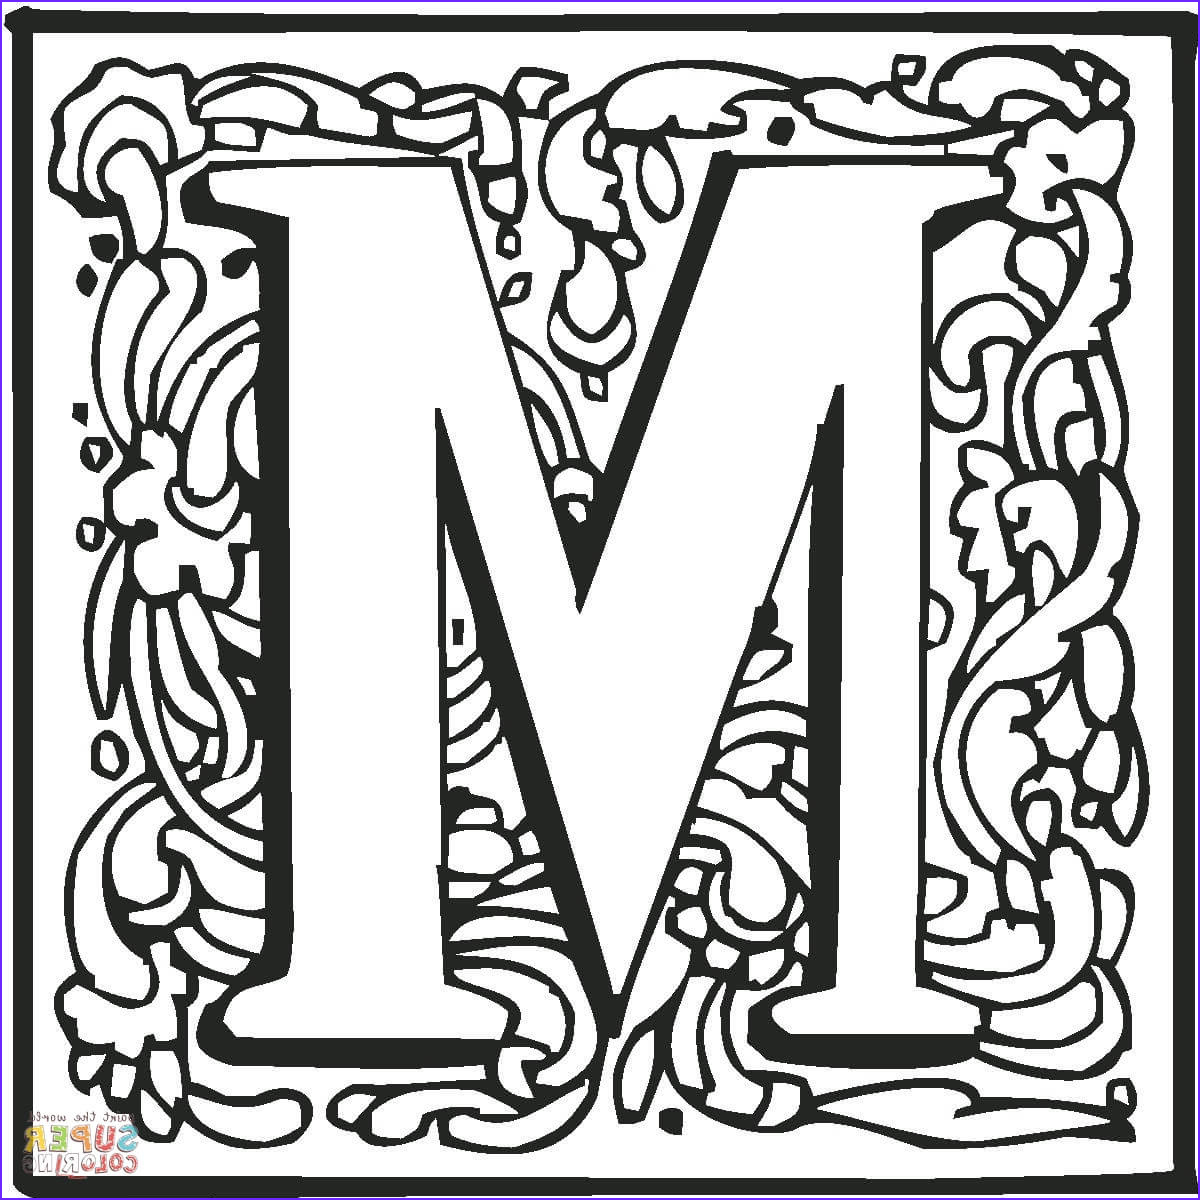 M Coloring Sheet Elegant Photos Letter M with ornament Coloring Page